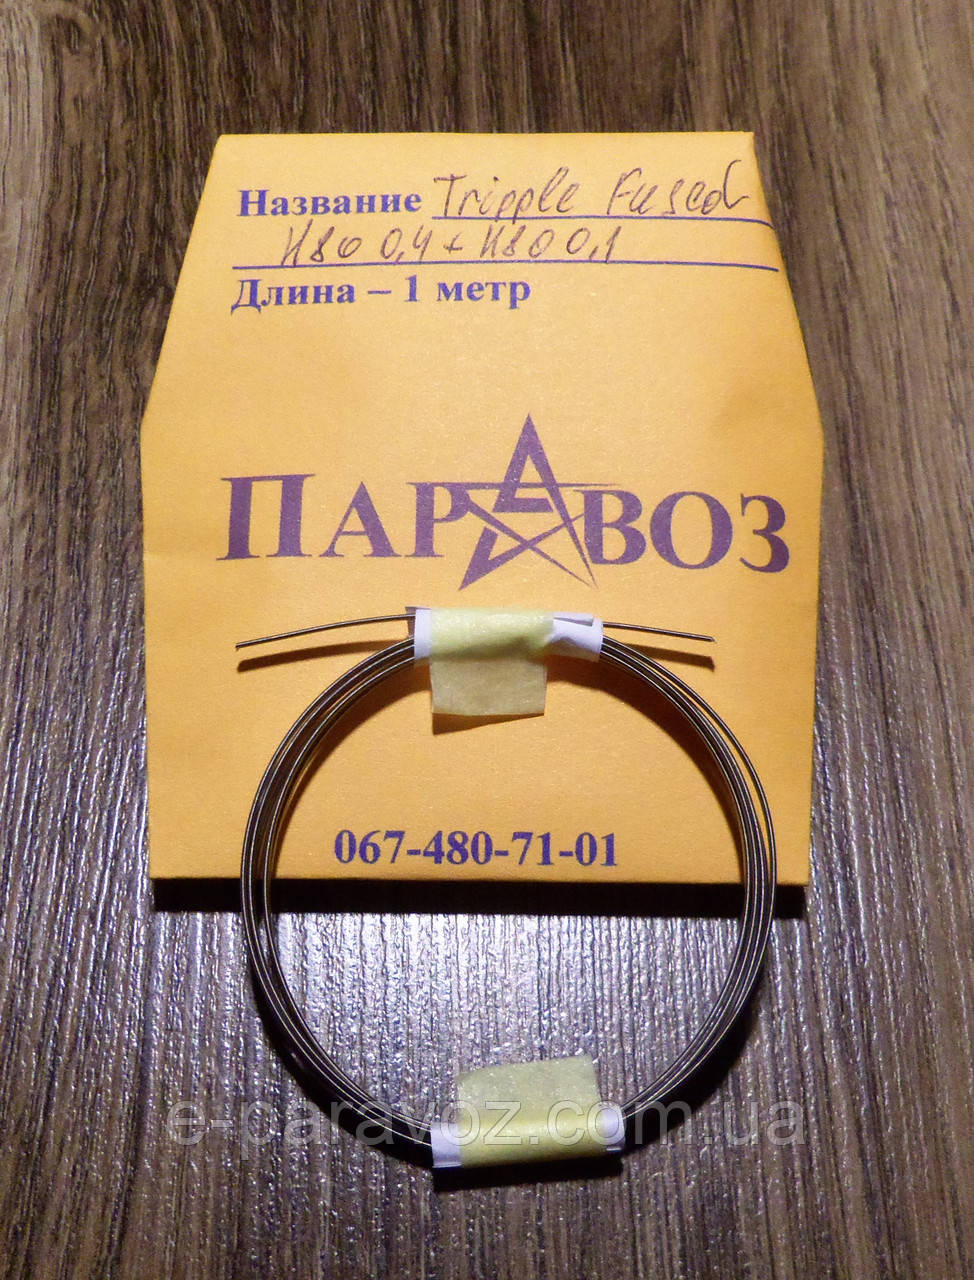 Tripple Fused Wire ( 1 метр)